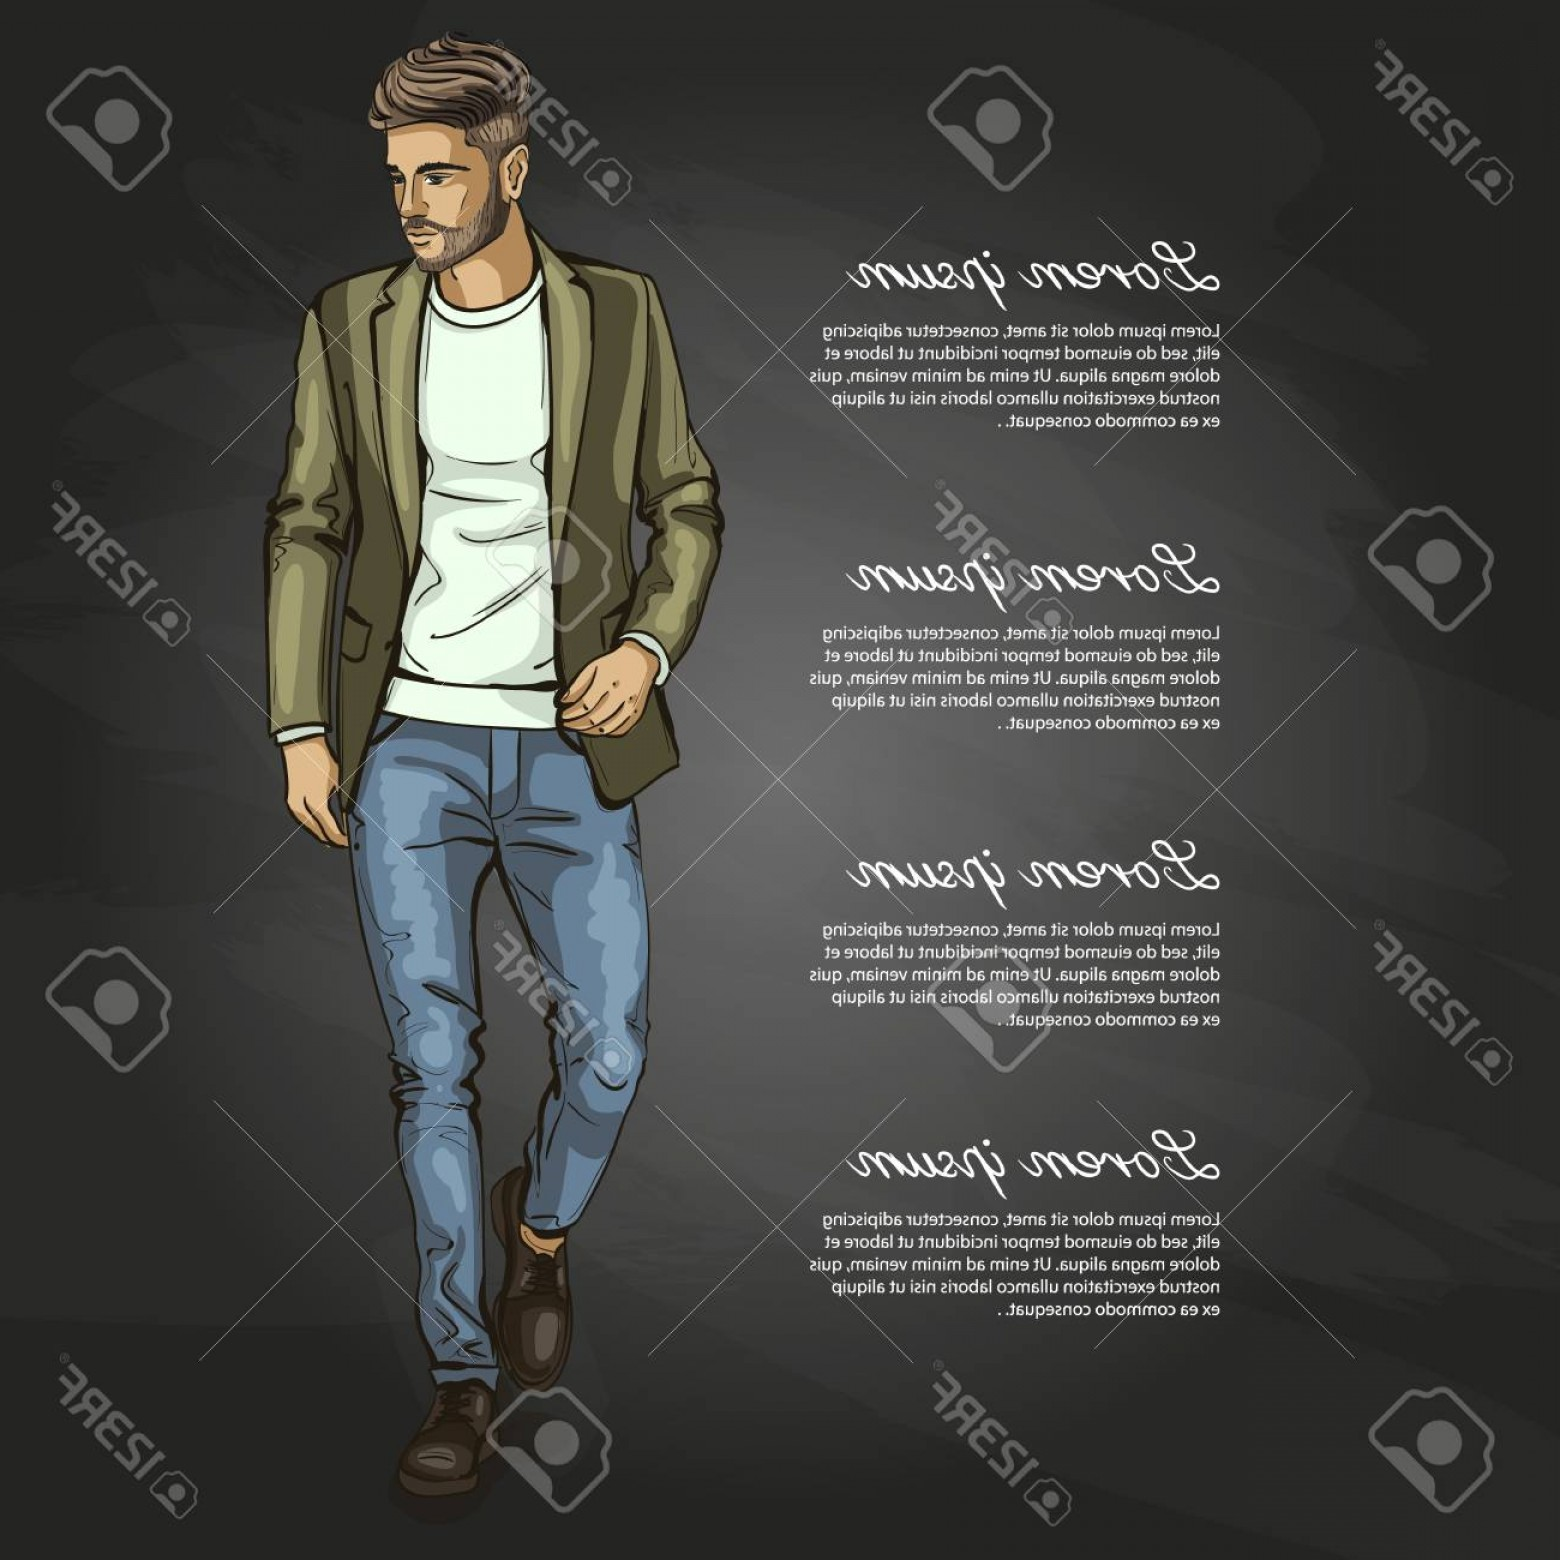 Vectorman Darkness: Photostock Vector Vector Man Model Dressed In Jeans Shoes Classic Jacket And T Shirt On Dark Background